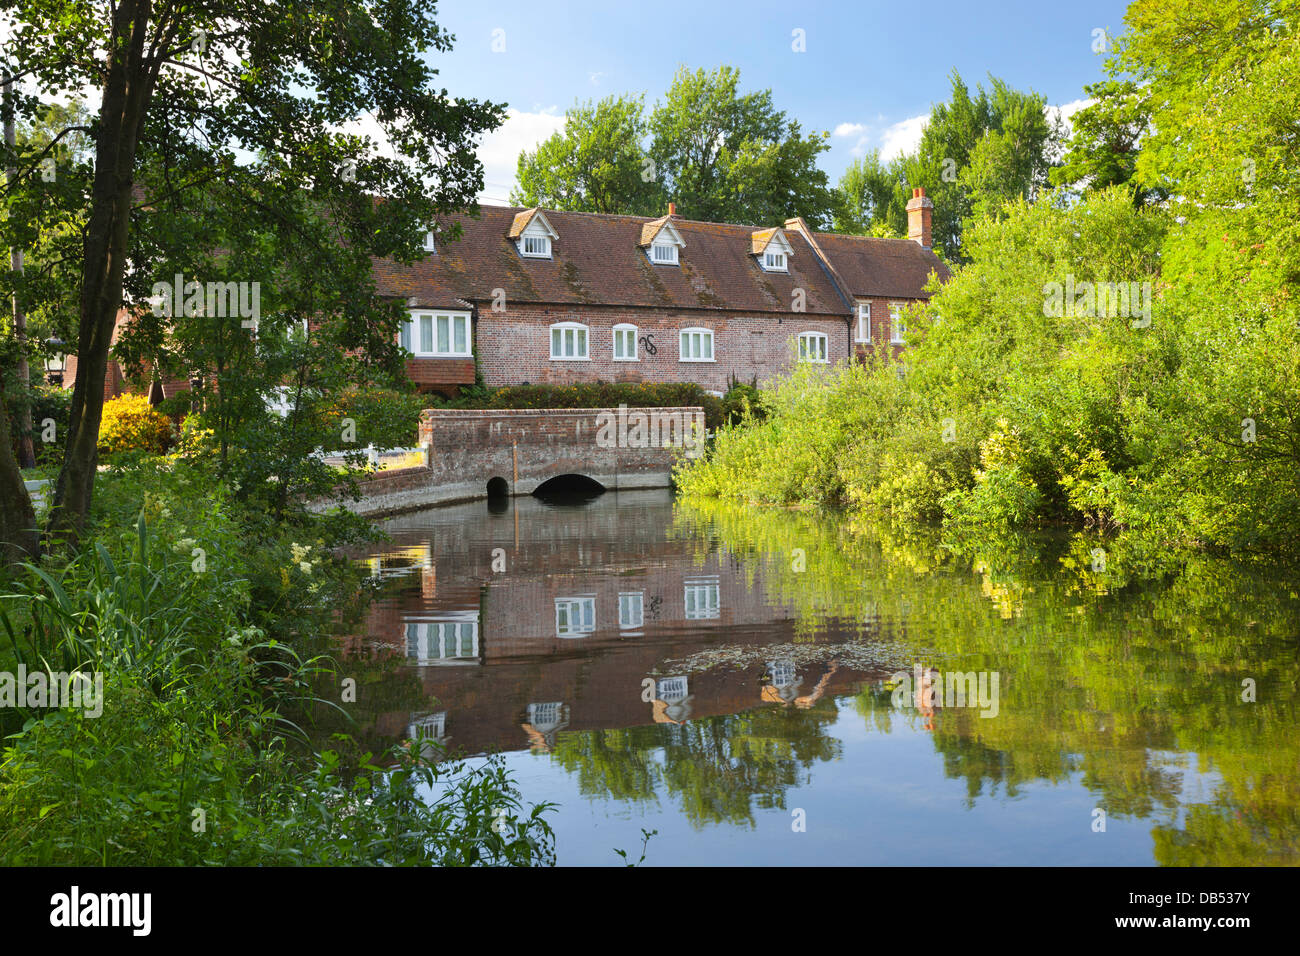 Old mill on River Kennet at Lower Denford - Stock Image